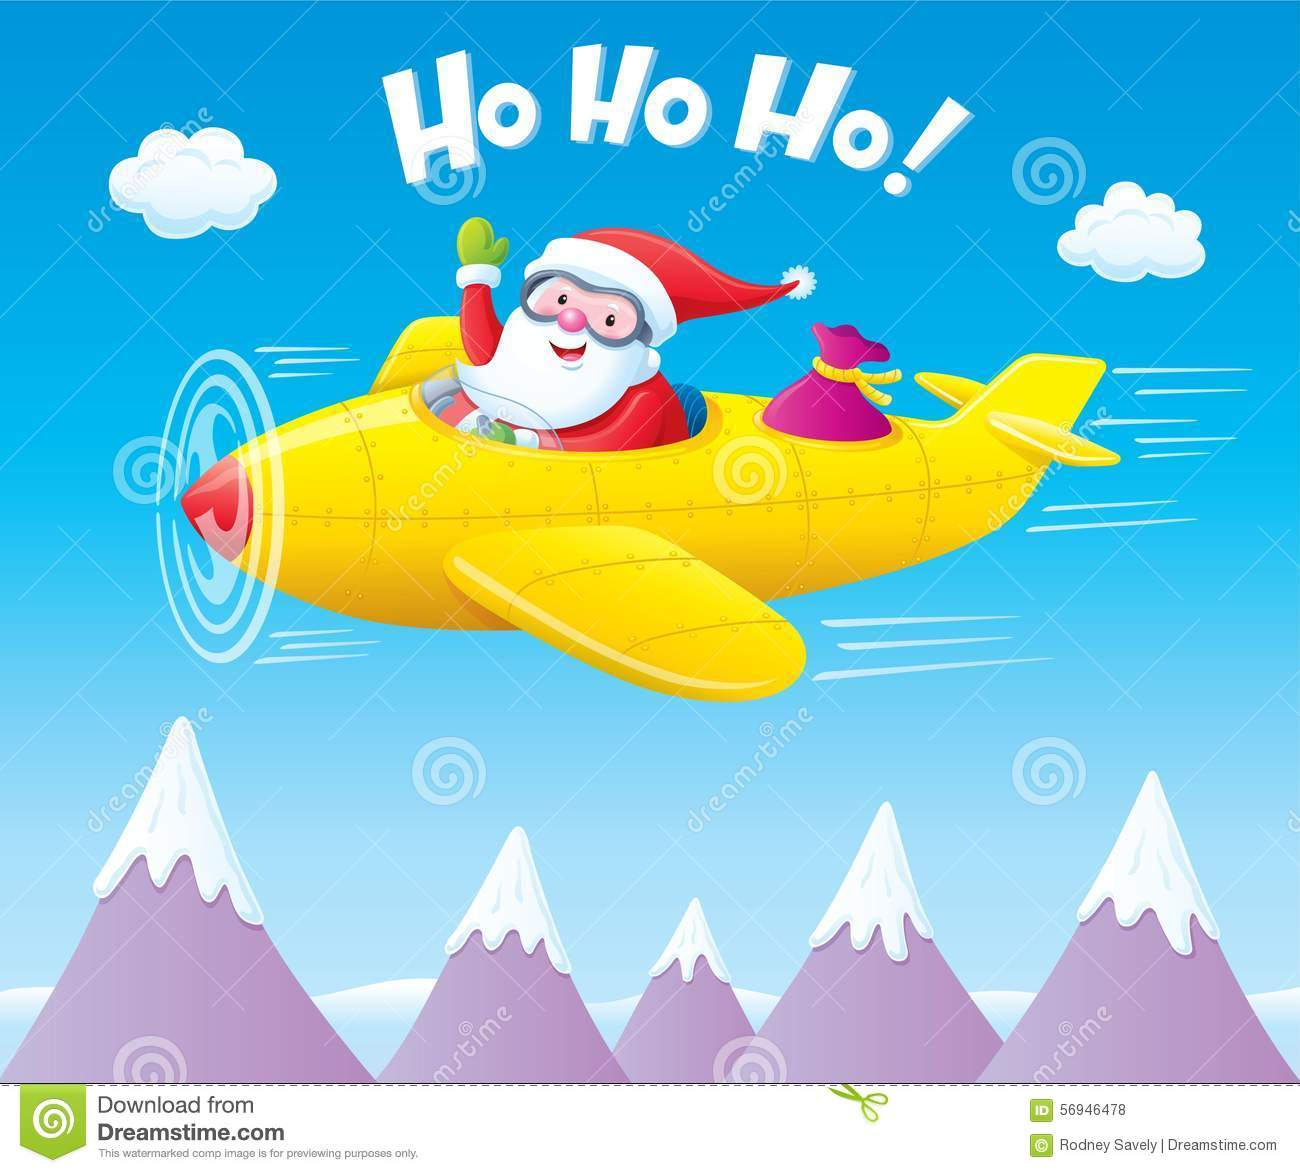 helicopter seats 8 with Stock Photo Santa Claus Flying Airplane Presents Cartoon Illustration Jolly Character Waving Words Ho Ho Ho Image56946478 on Stock Photo Santa Claus Flying Airplane Presents Cartoon Illustration Jolly Character Waving Words Ho Ho Ho Image56946478 besides Pictures Bell Targets Military Market With 525 Heli 440587 further Editorial Stock Photo Inside Chinook Helicopter Particular Aboard Midway Seacarrier Image53204438 besides 362069357182 together with Multibody Dynamics.